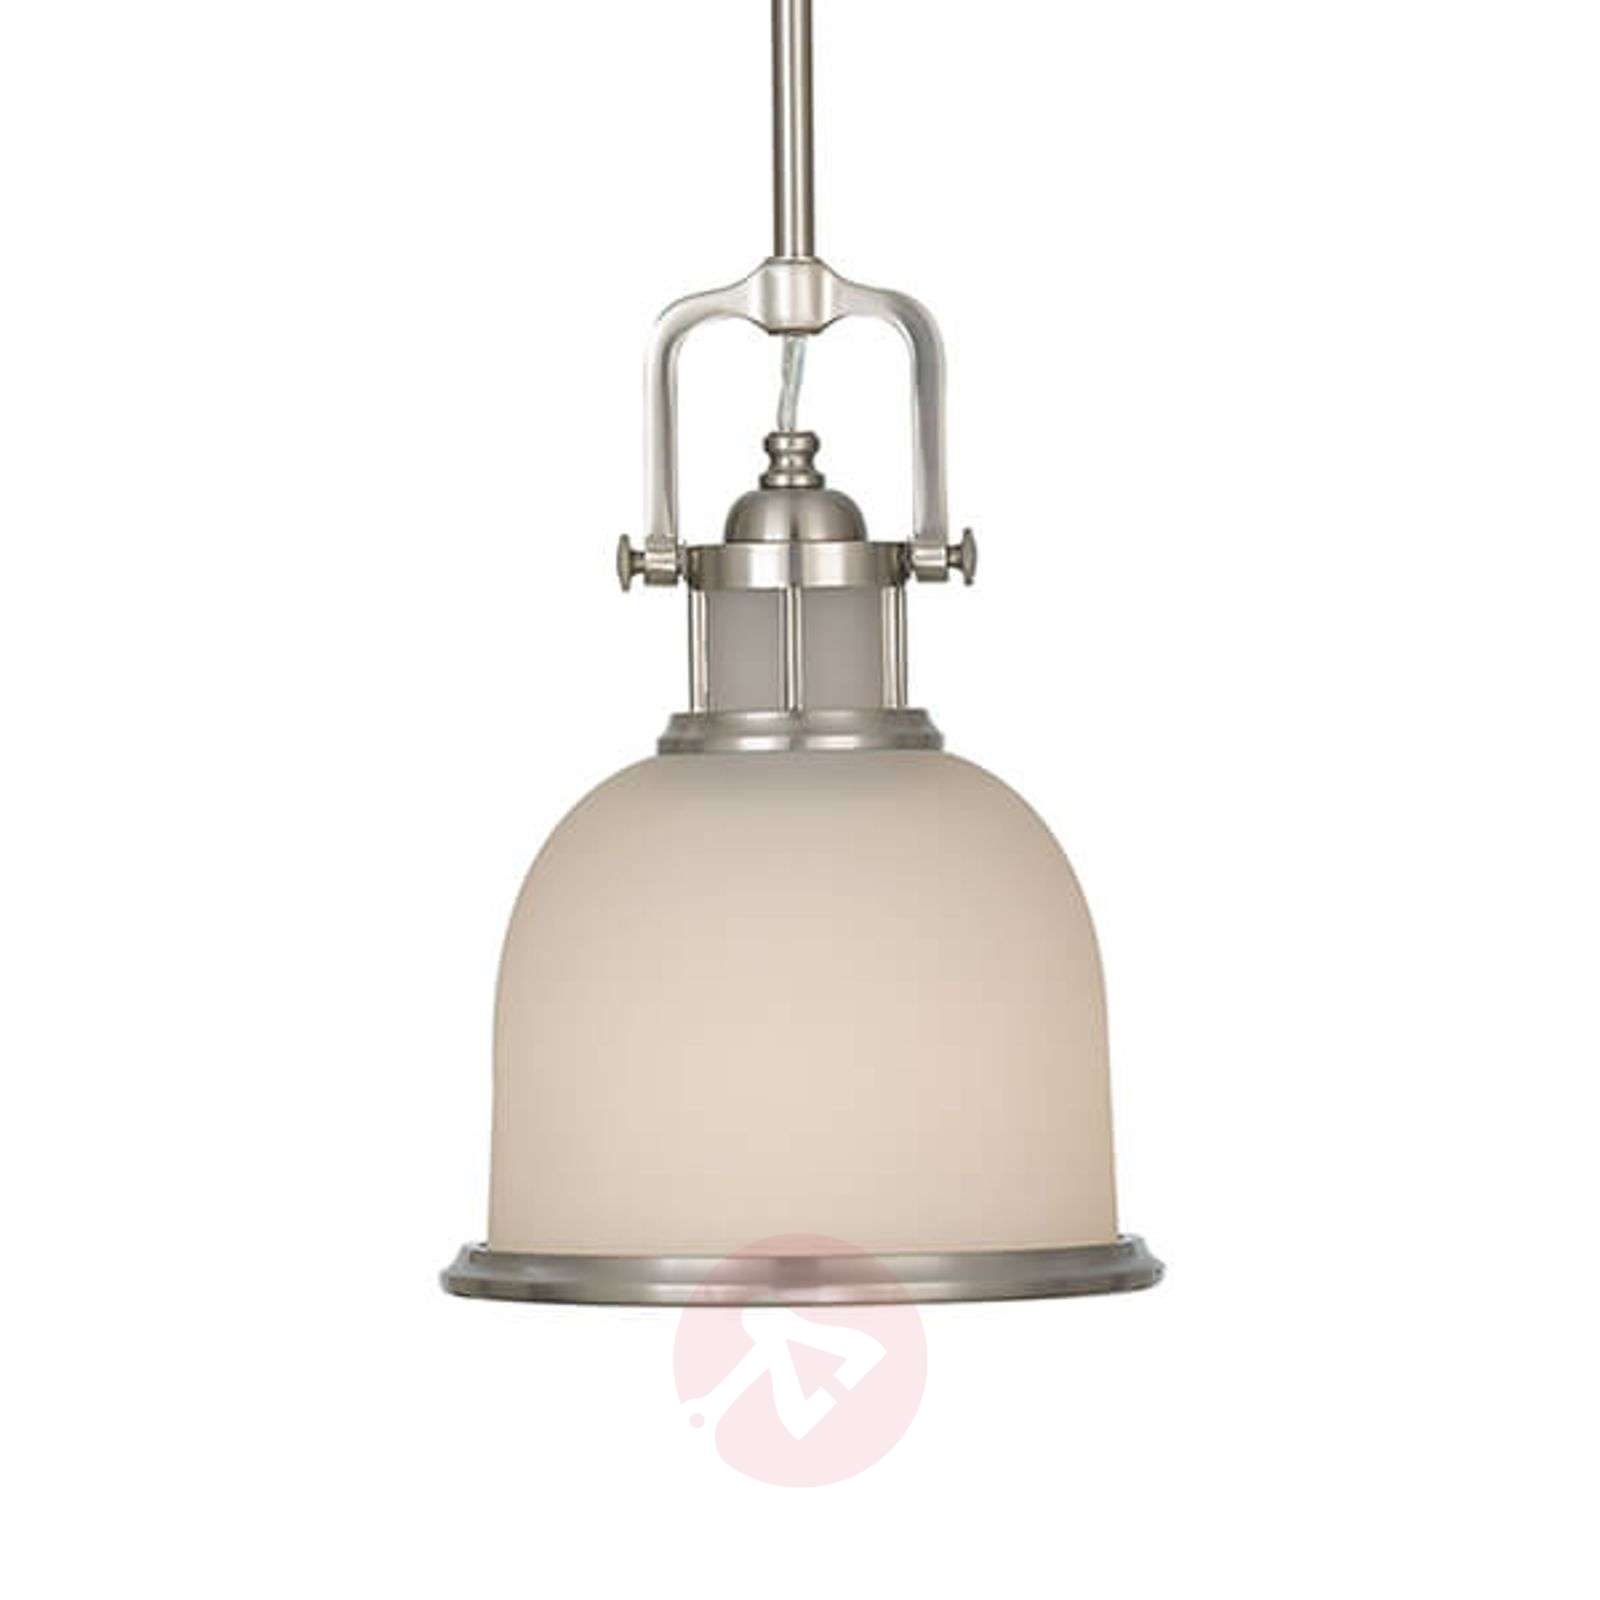 Parker Place slim hanging lamp in industrial style-3048607-01